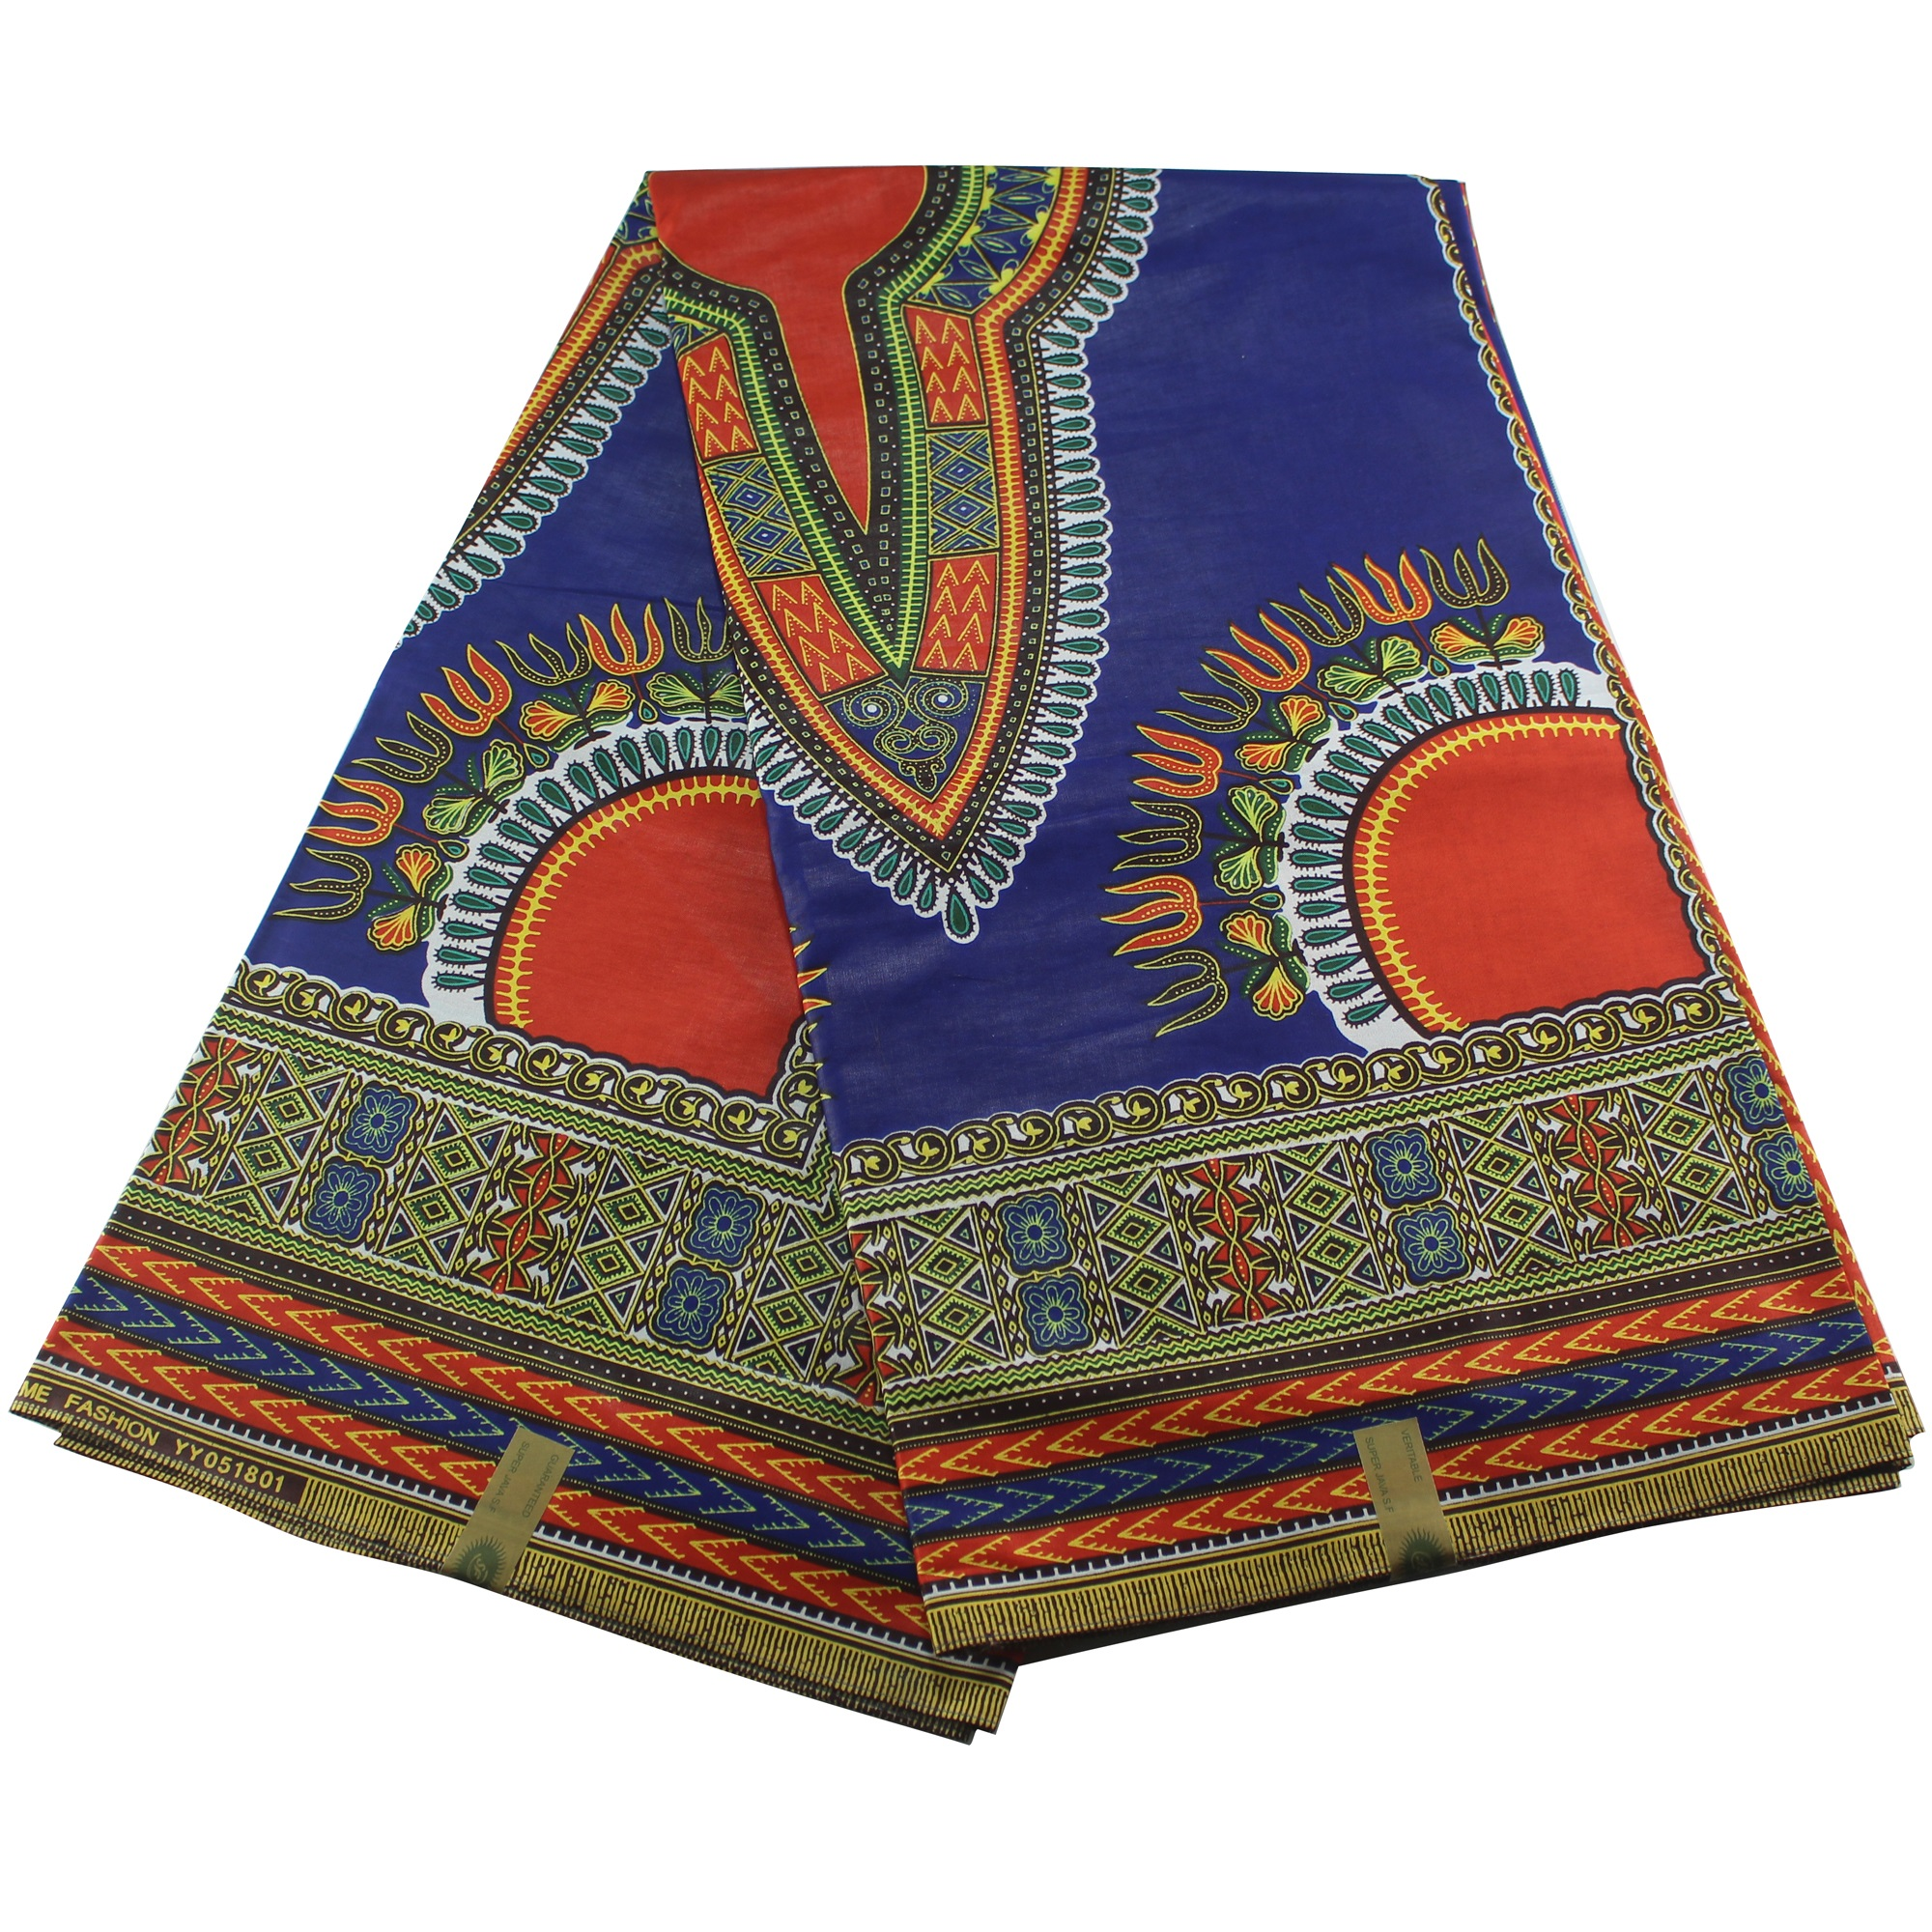 New Dashiki Thick African Wax Colorful Ankara Fabric Material 100% Cotton For Clothing Sewing